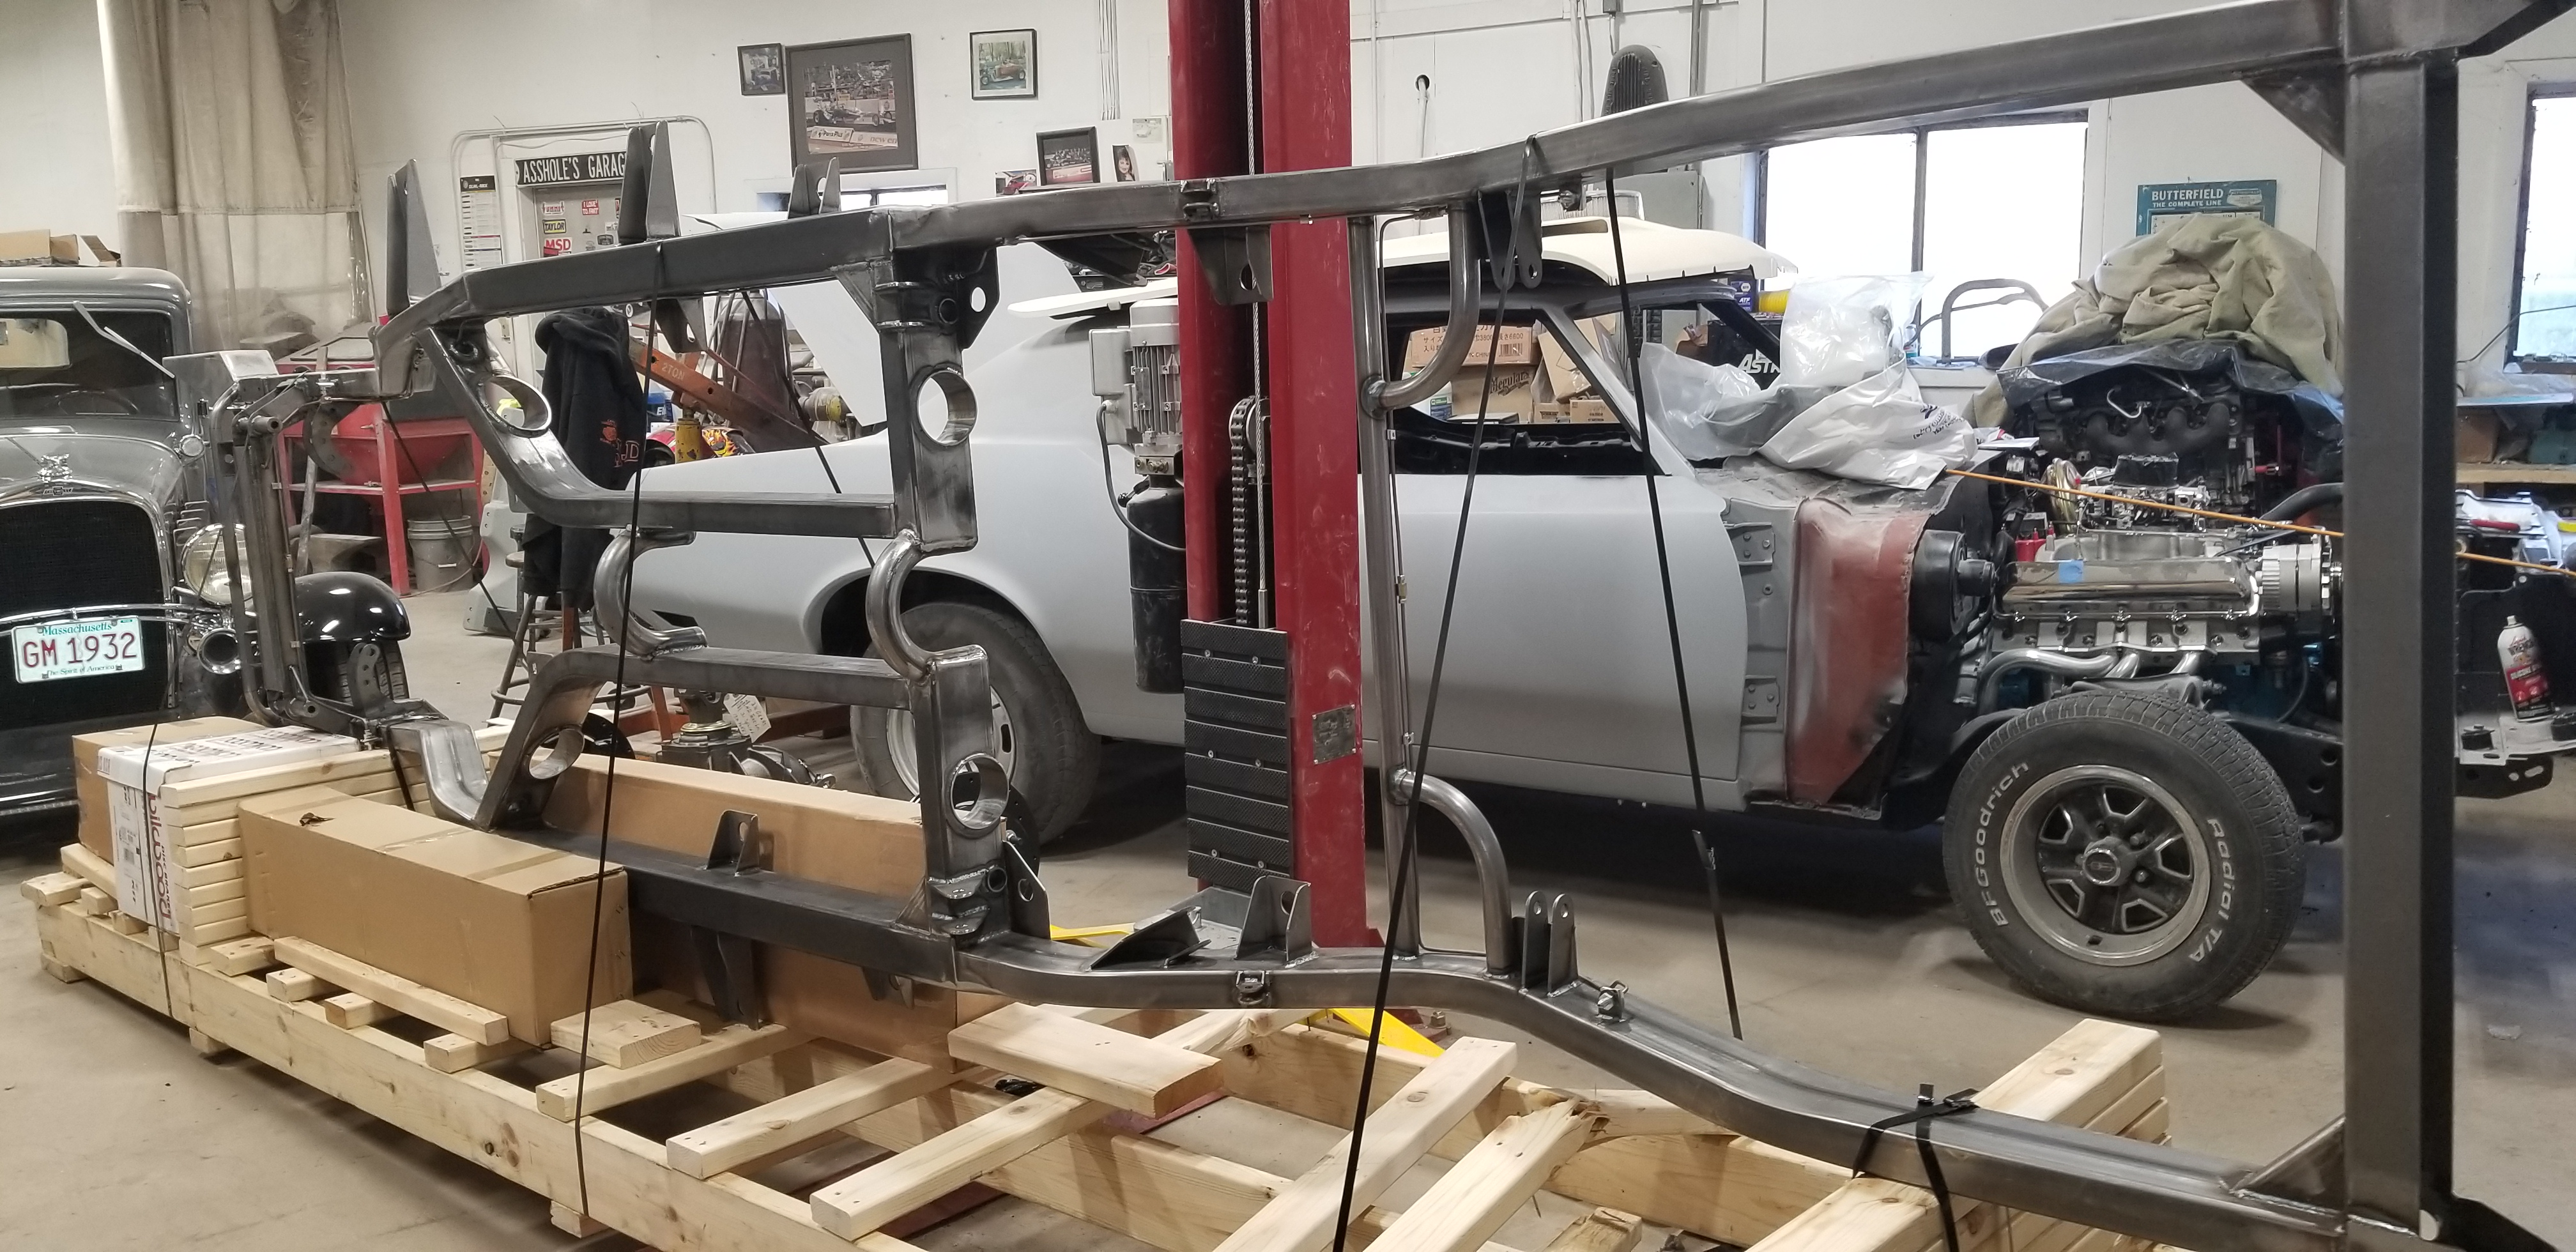 55 Nomad Chassis